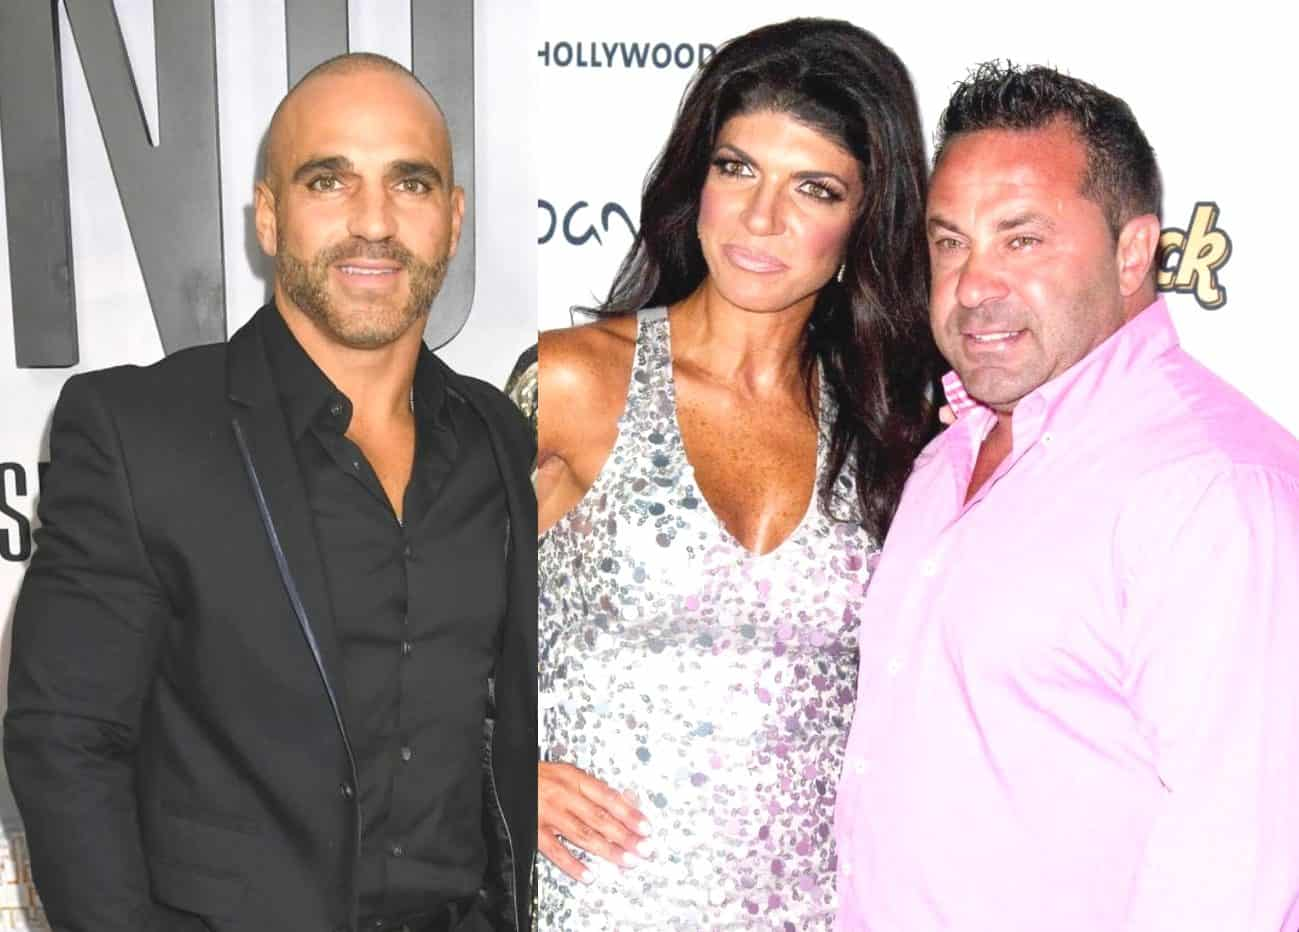 RHONJ Star Joe Gorga Responds to Joe Guidice's Social Media Diss! Confirms Teresa's Started Divorce Proceedings and Shares if She's Dating